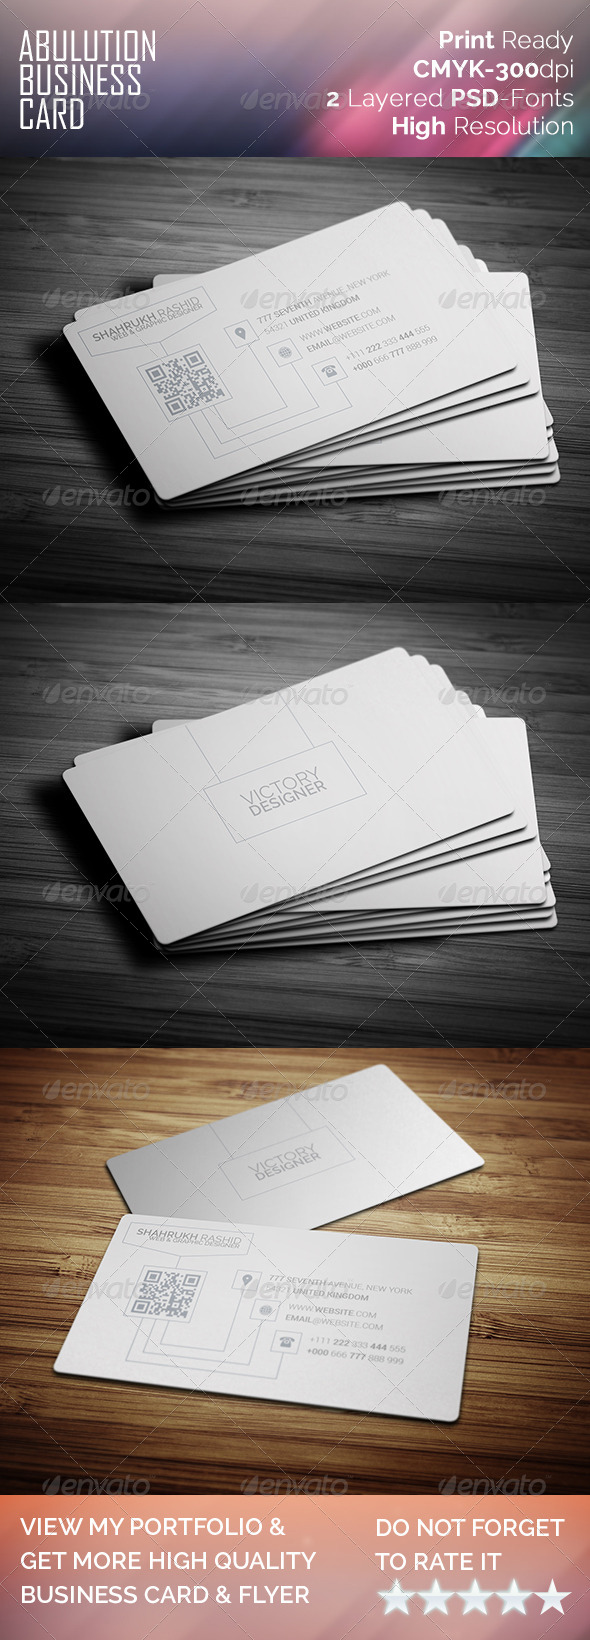 GraphicRiver Abulution Business Card 8023805